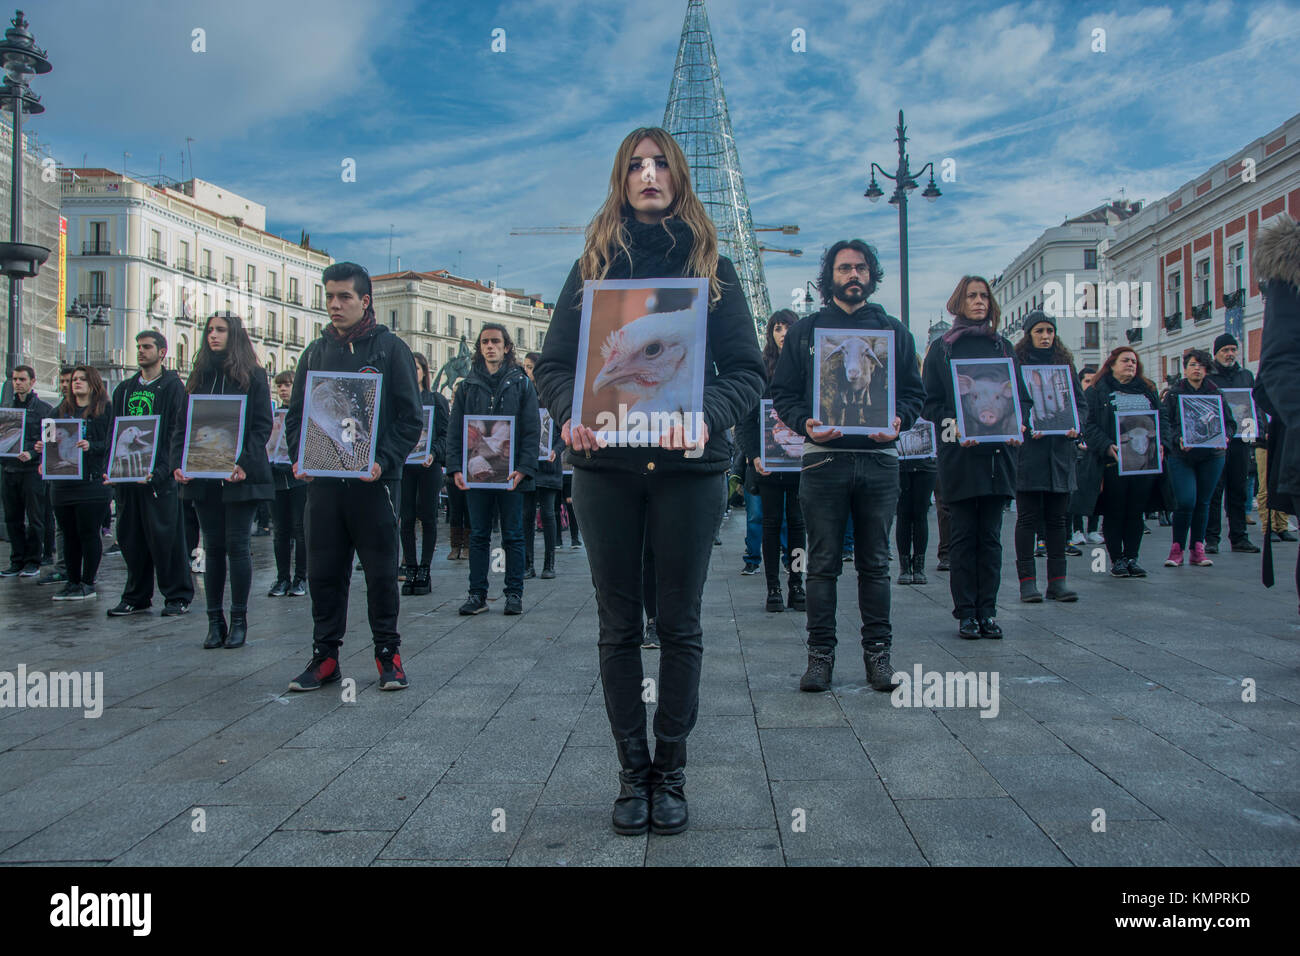 Madrid, Spain. 09th Dec, 2017. animal right demonstration performance in the square sol in the center of Madrid - Stock Image